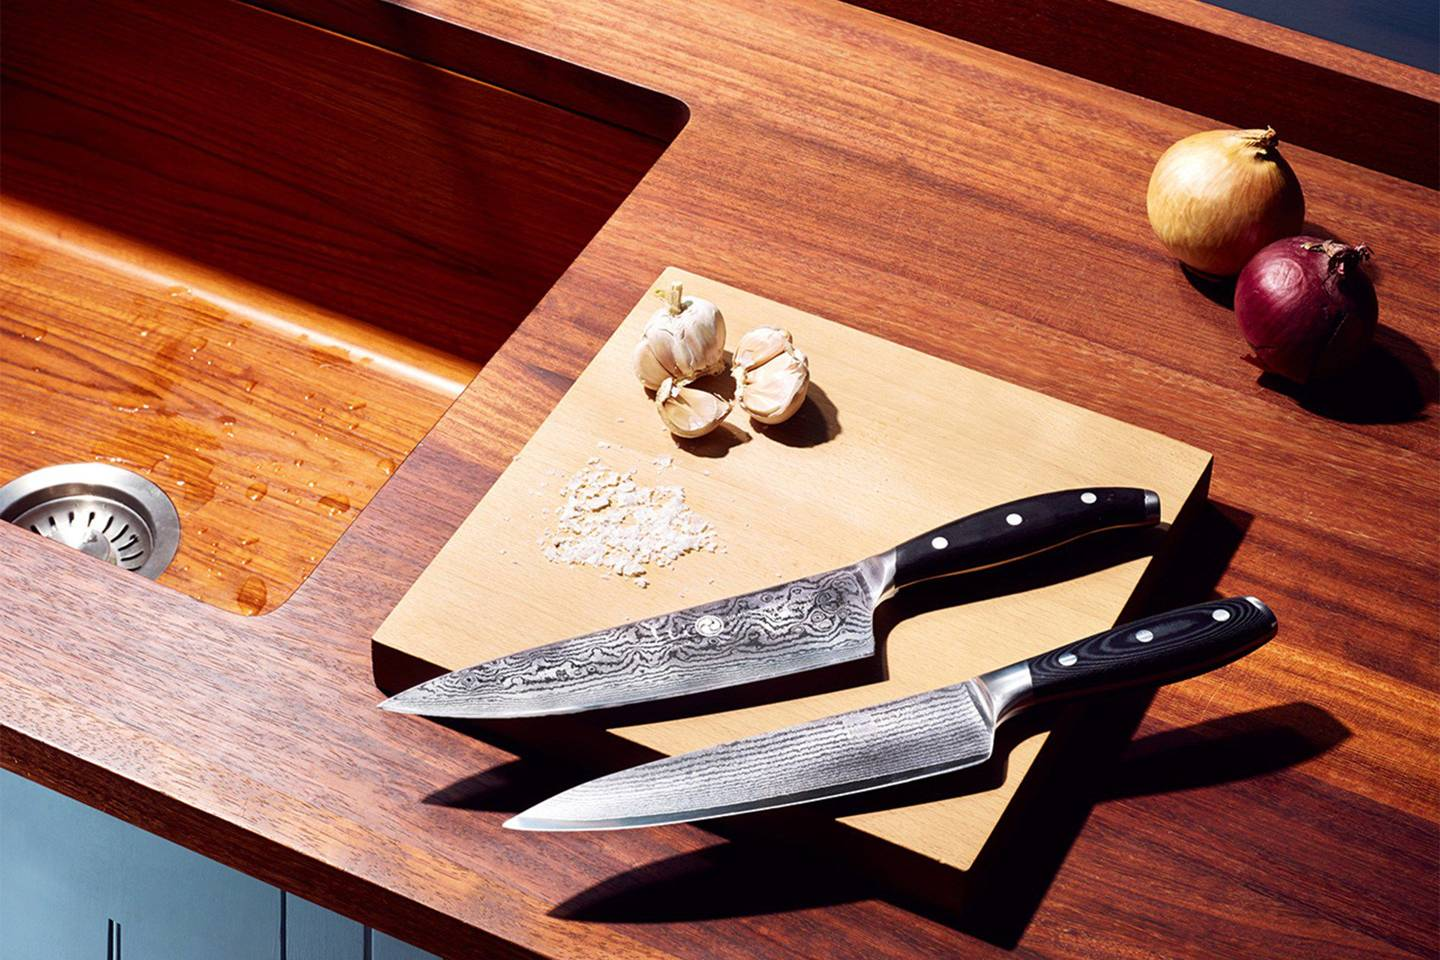 best chef knives tested and reviewed wired uk